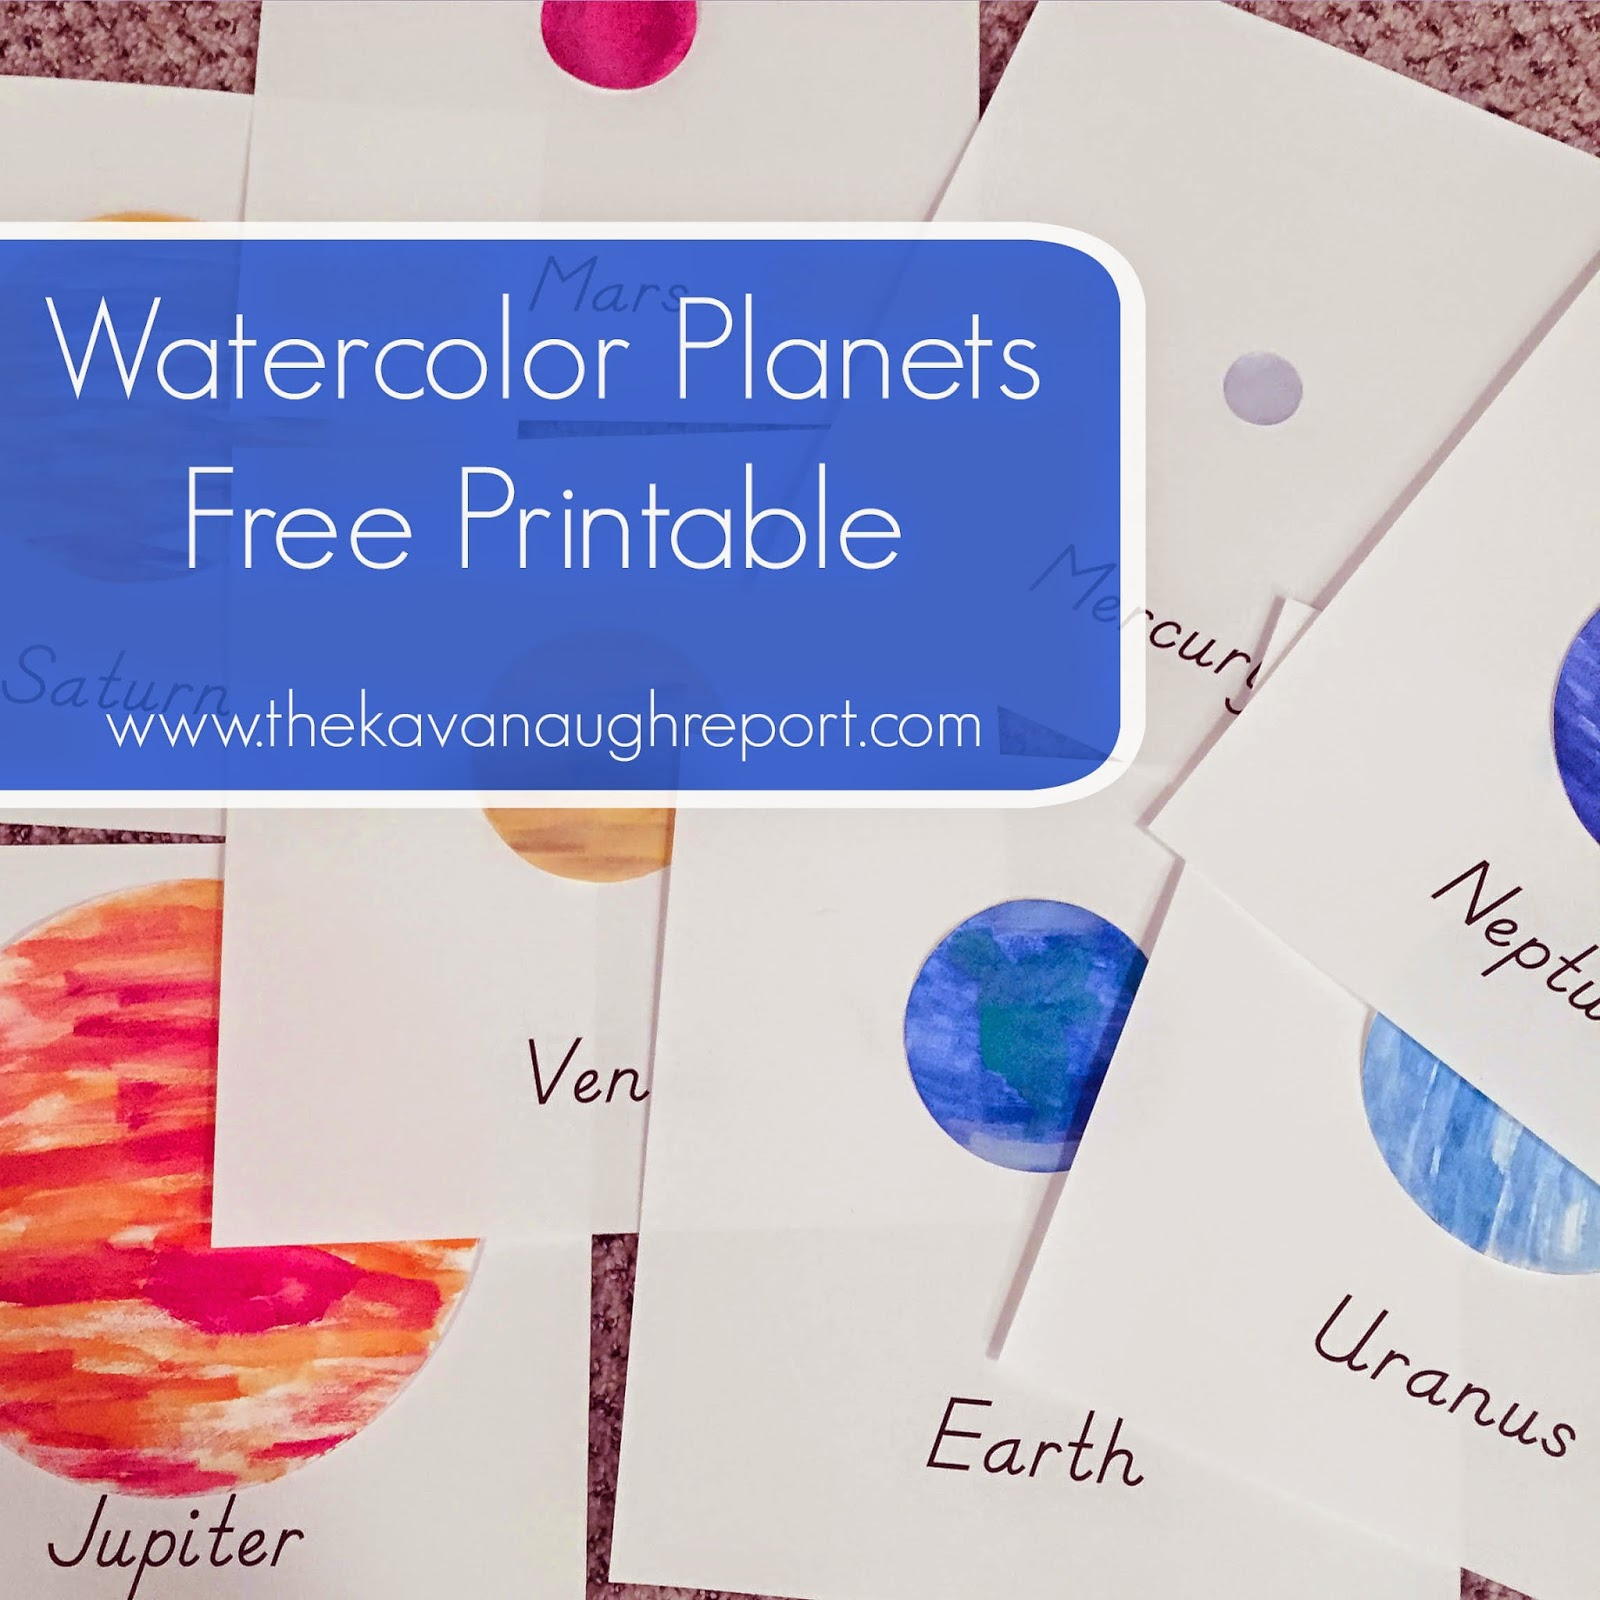 photo regarding Planets Printable identify Watercolor Planets Printable